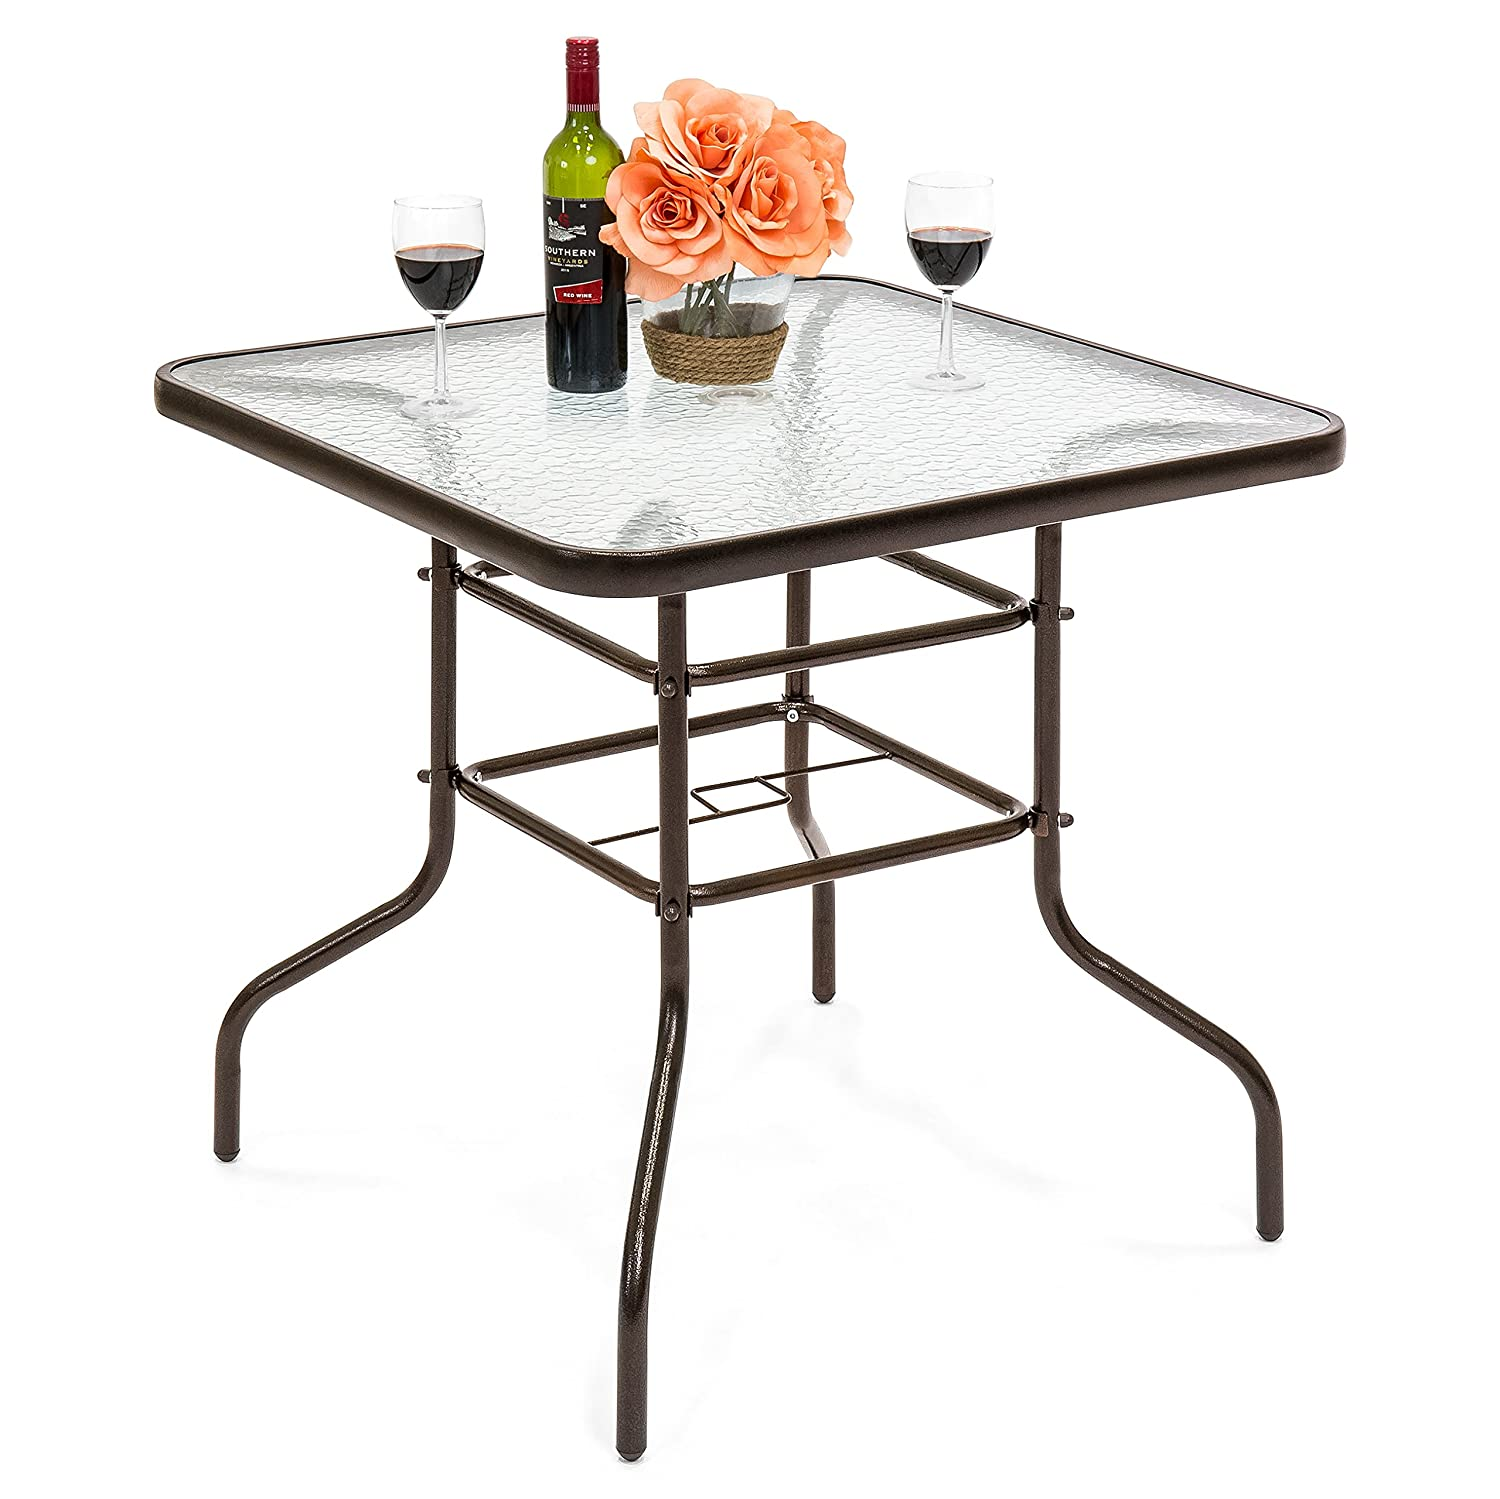 Best Choice Products 32in Square Tempered Glass Outdoor Patio Dining Bistro Table w Umbrella Hole, Steel Frame